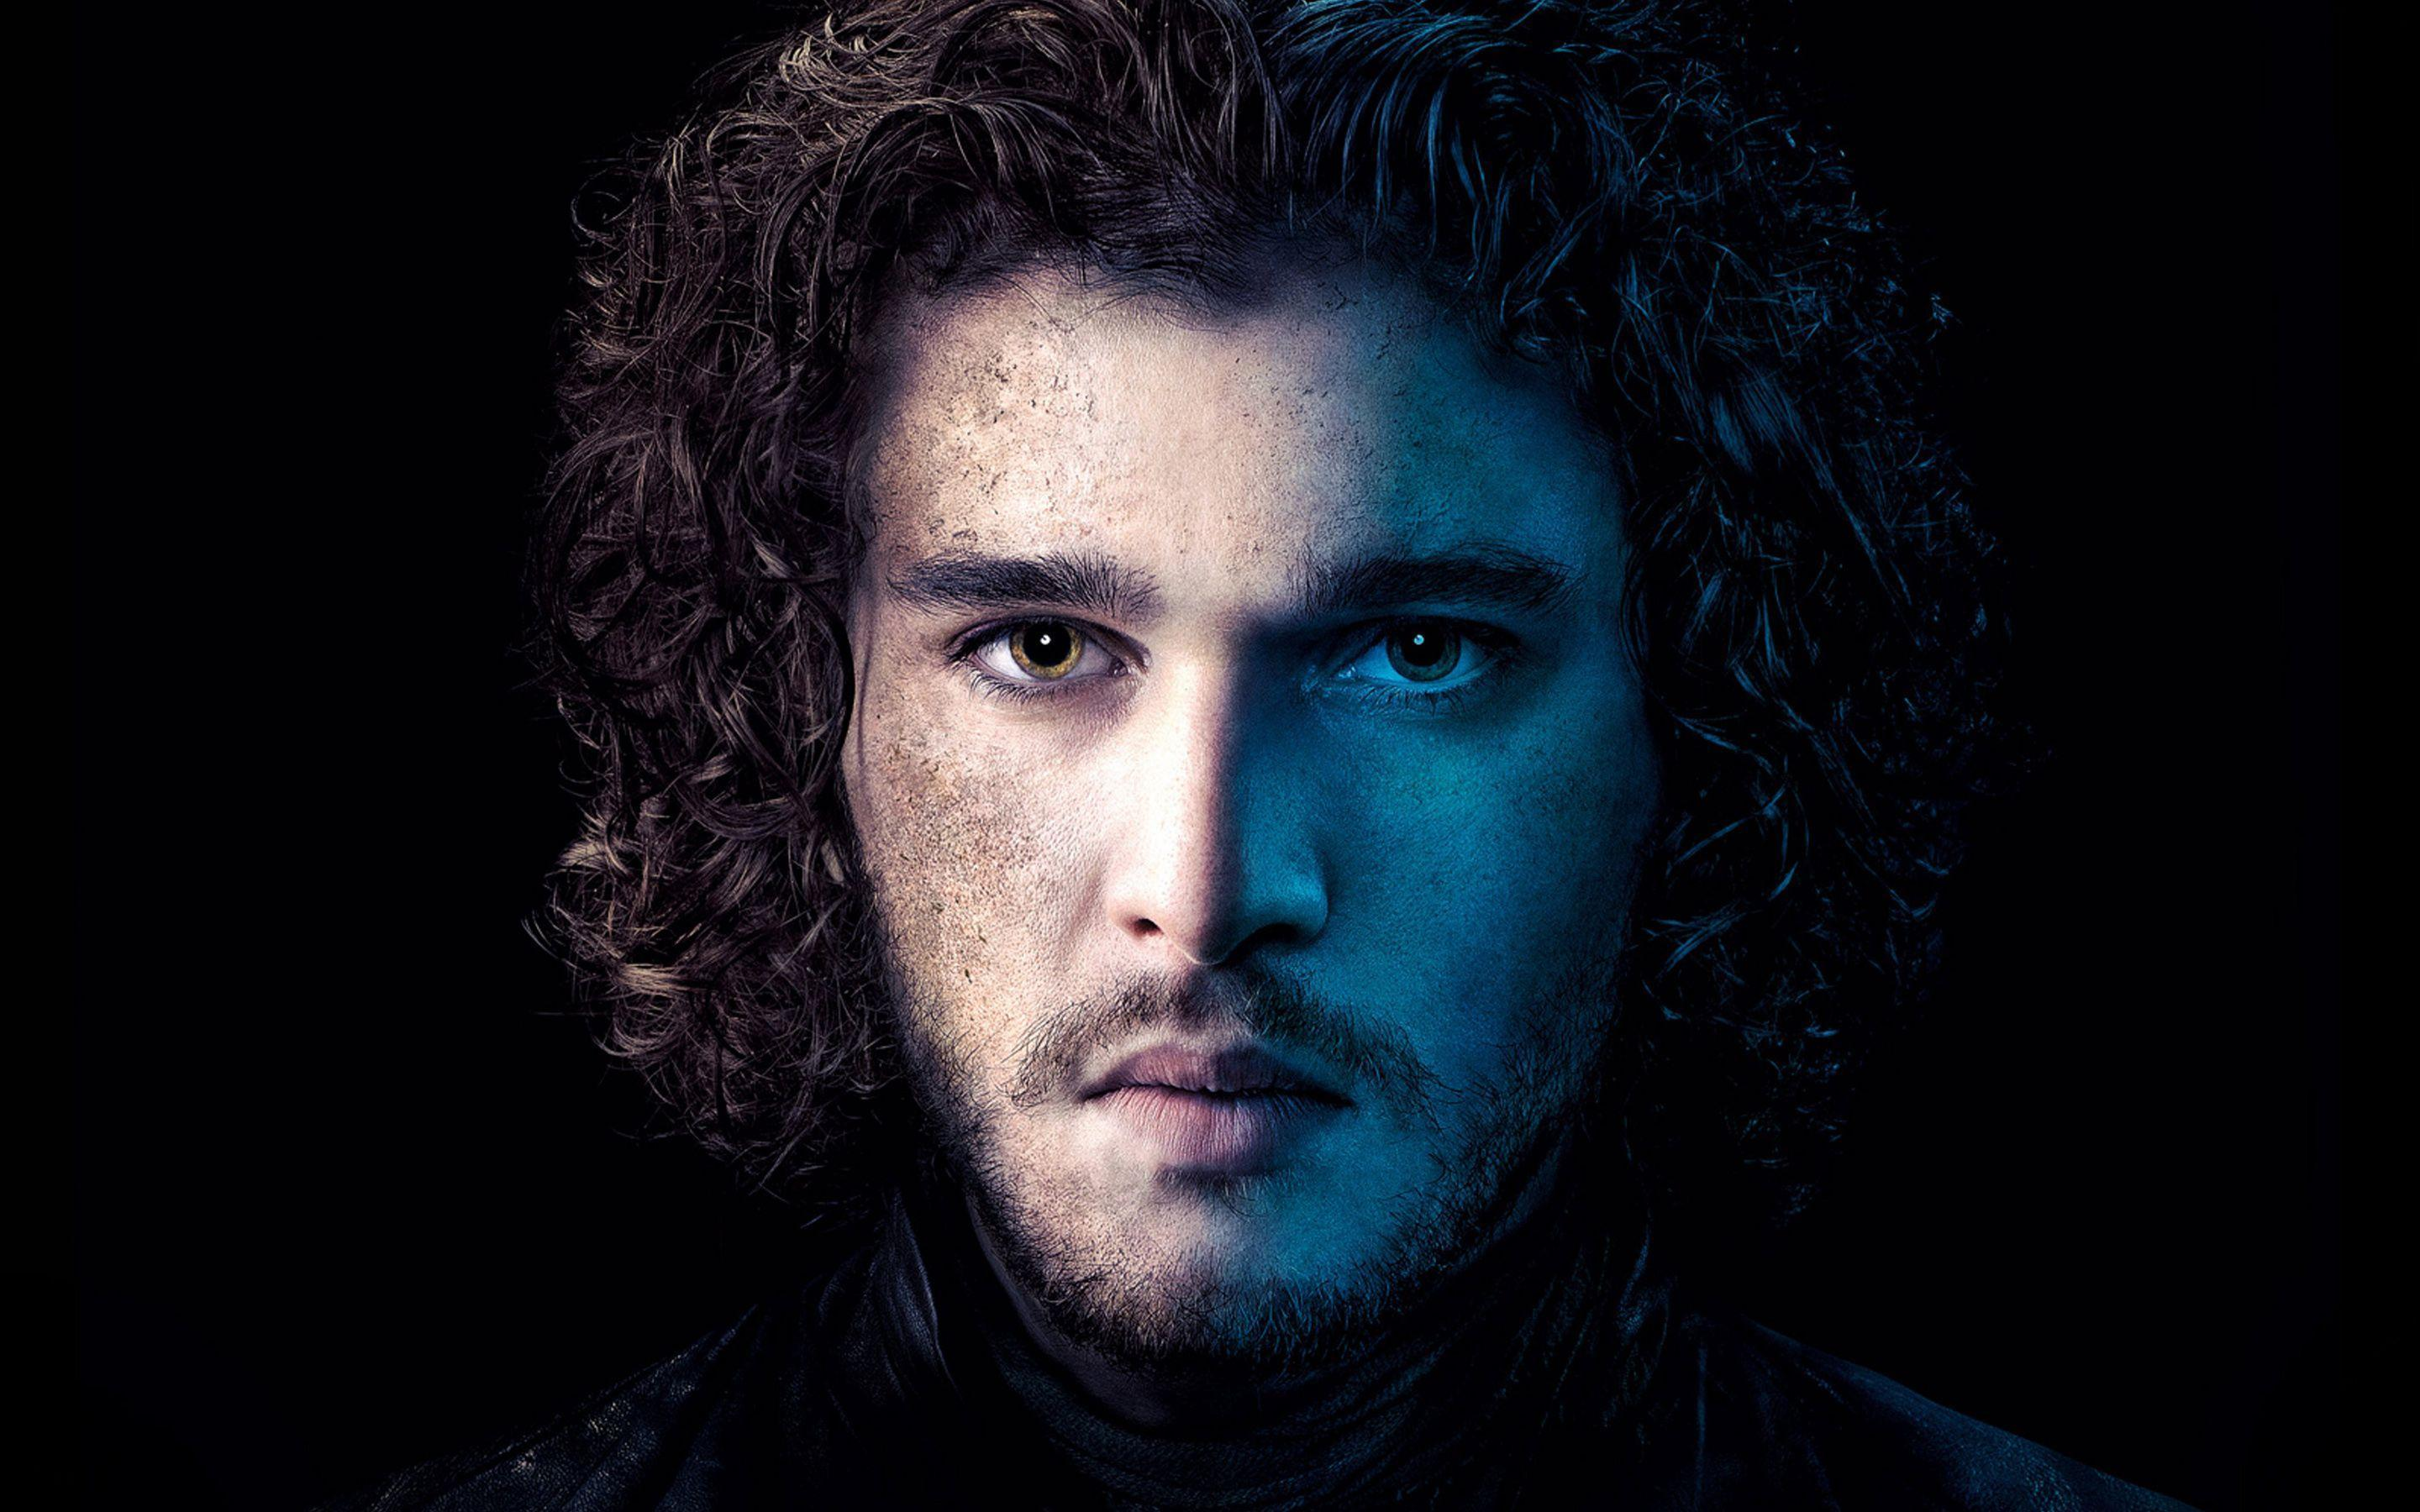 Jon Snow Game Of Thrones Wallpapers